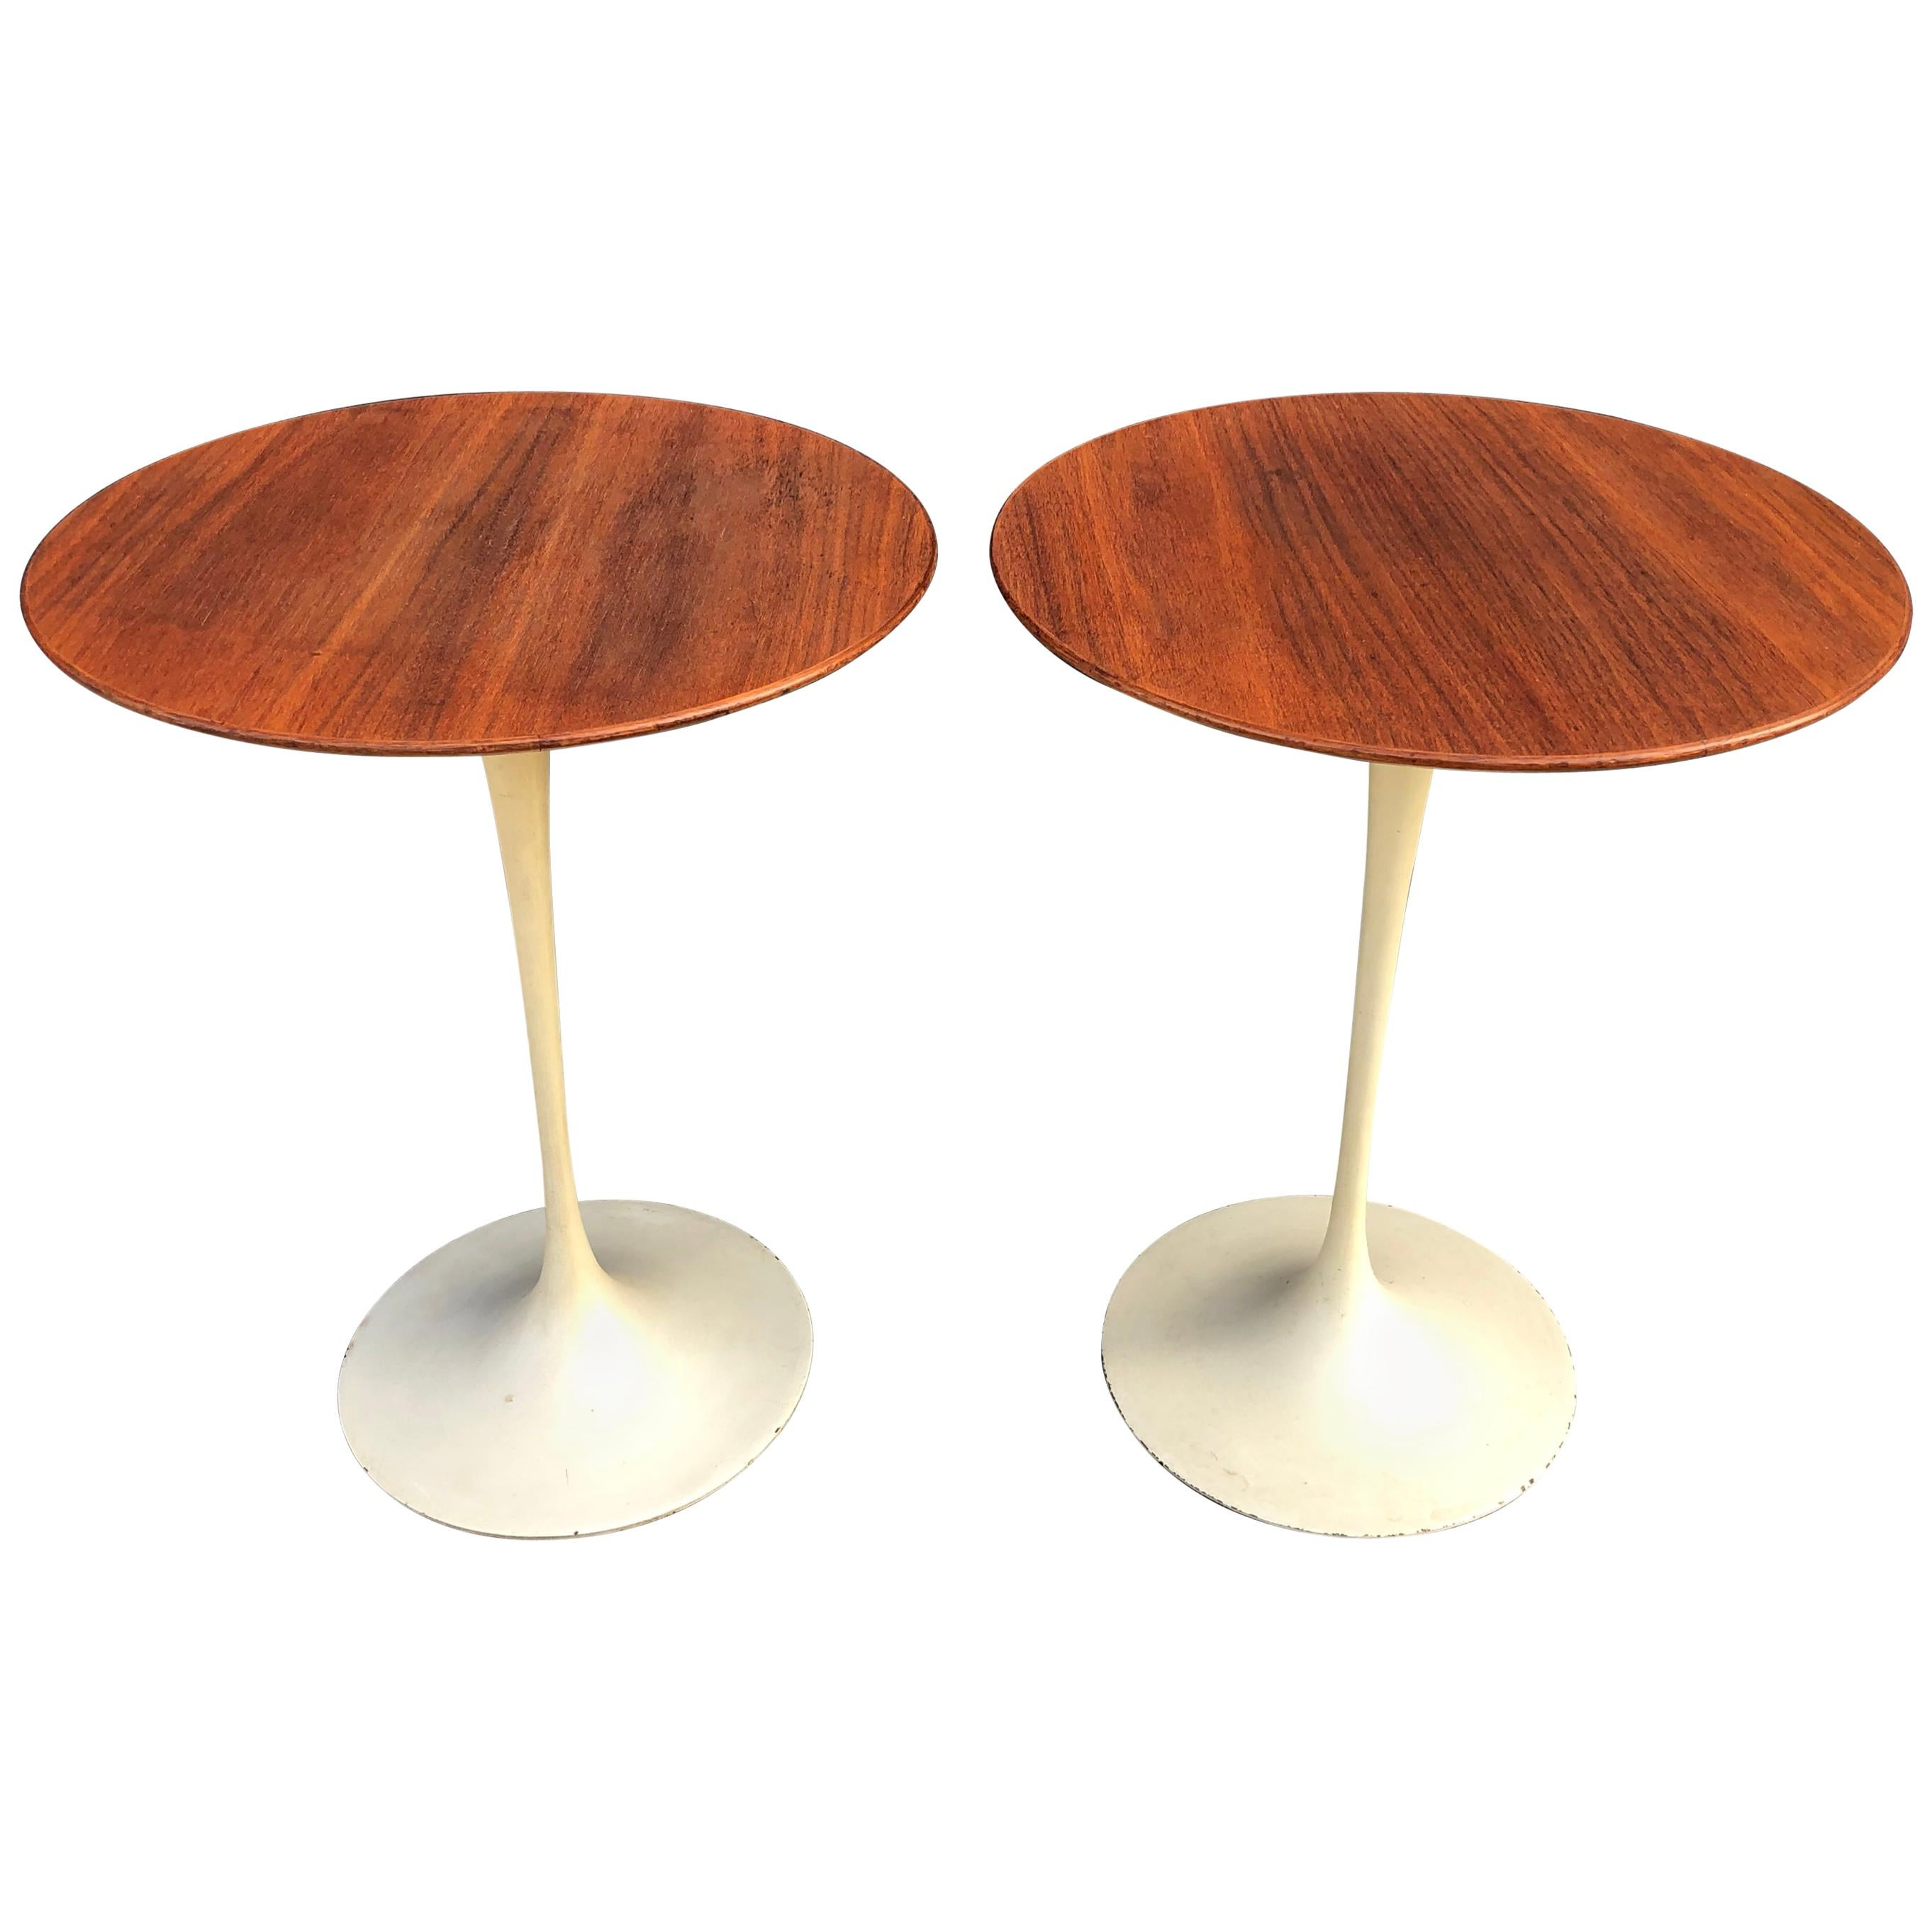 Tables Knoll Exquisite Eero Saarinen For Knoll Tulip Side Tables In Walnut